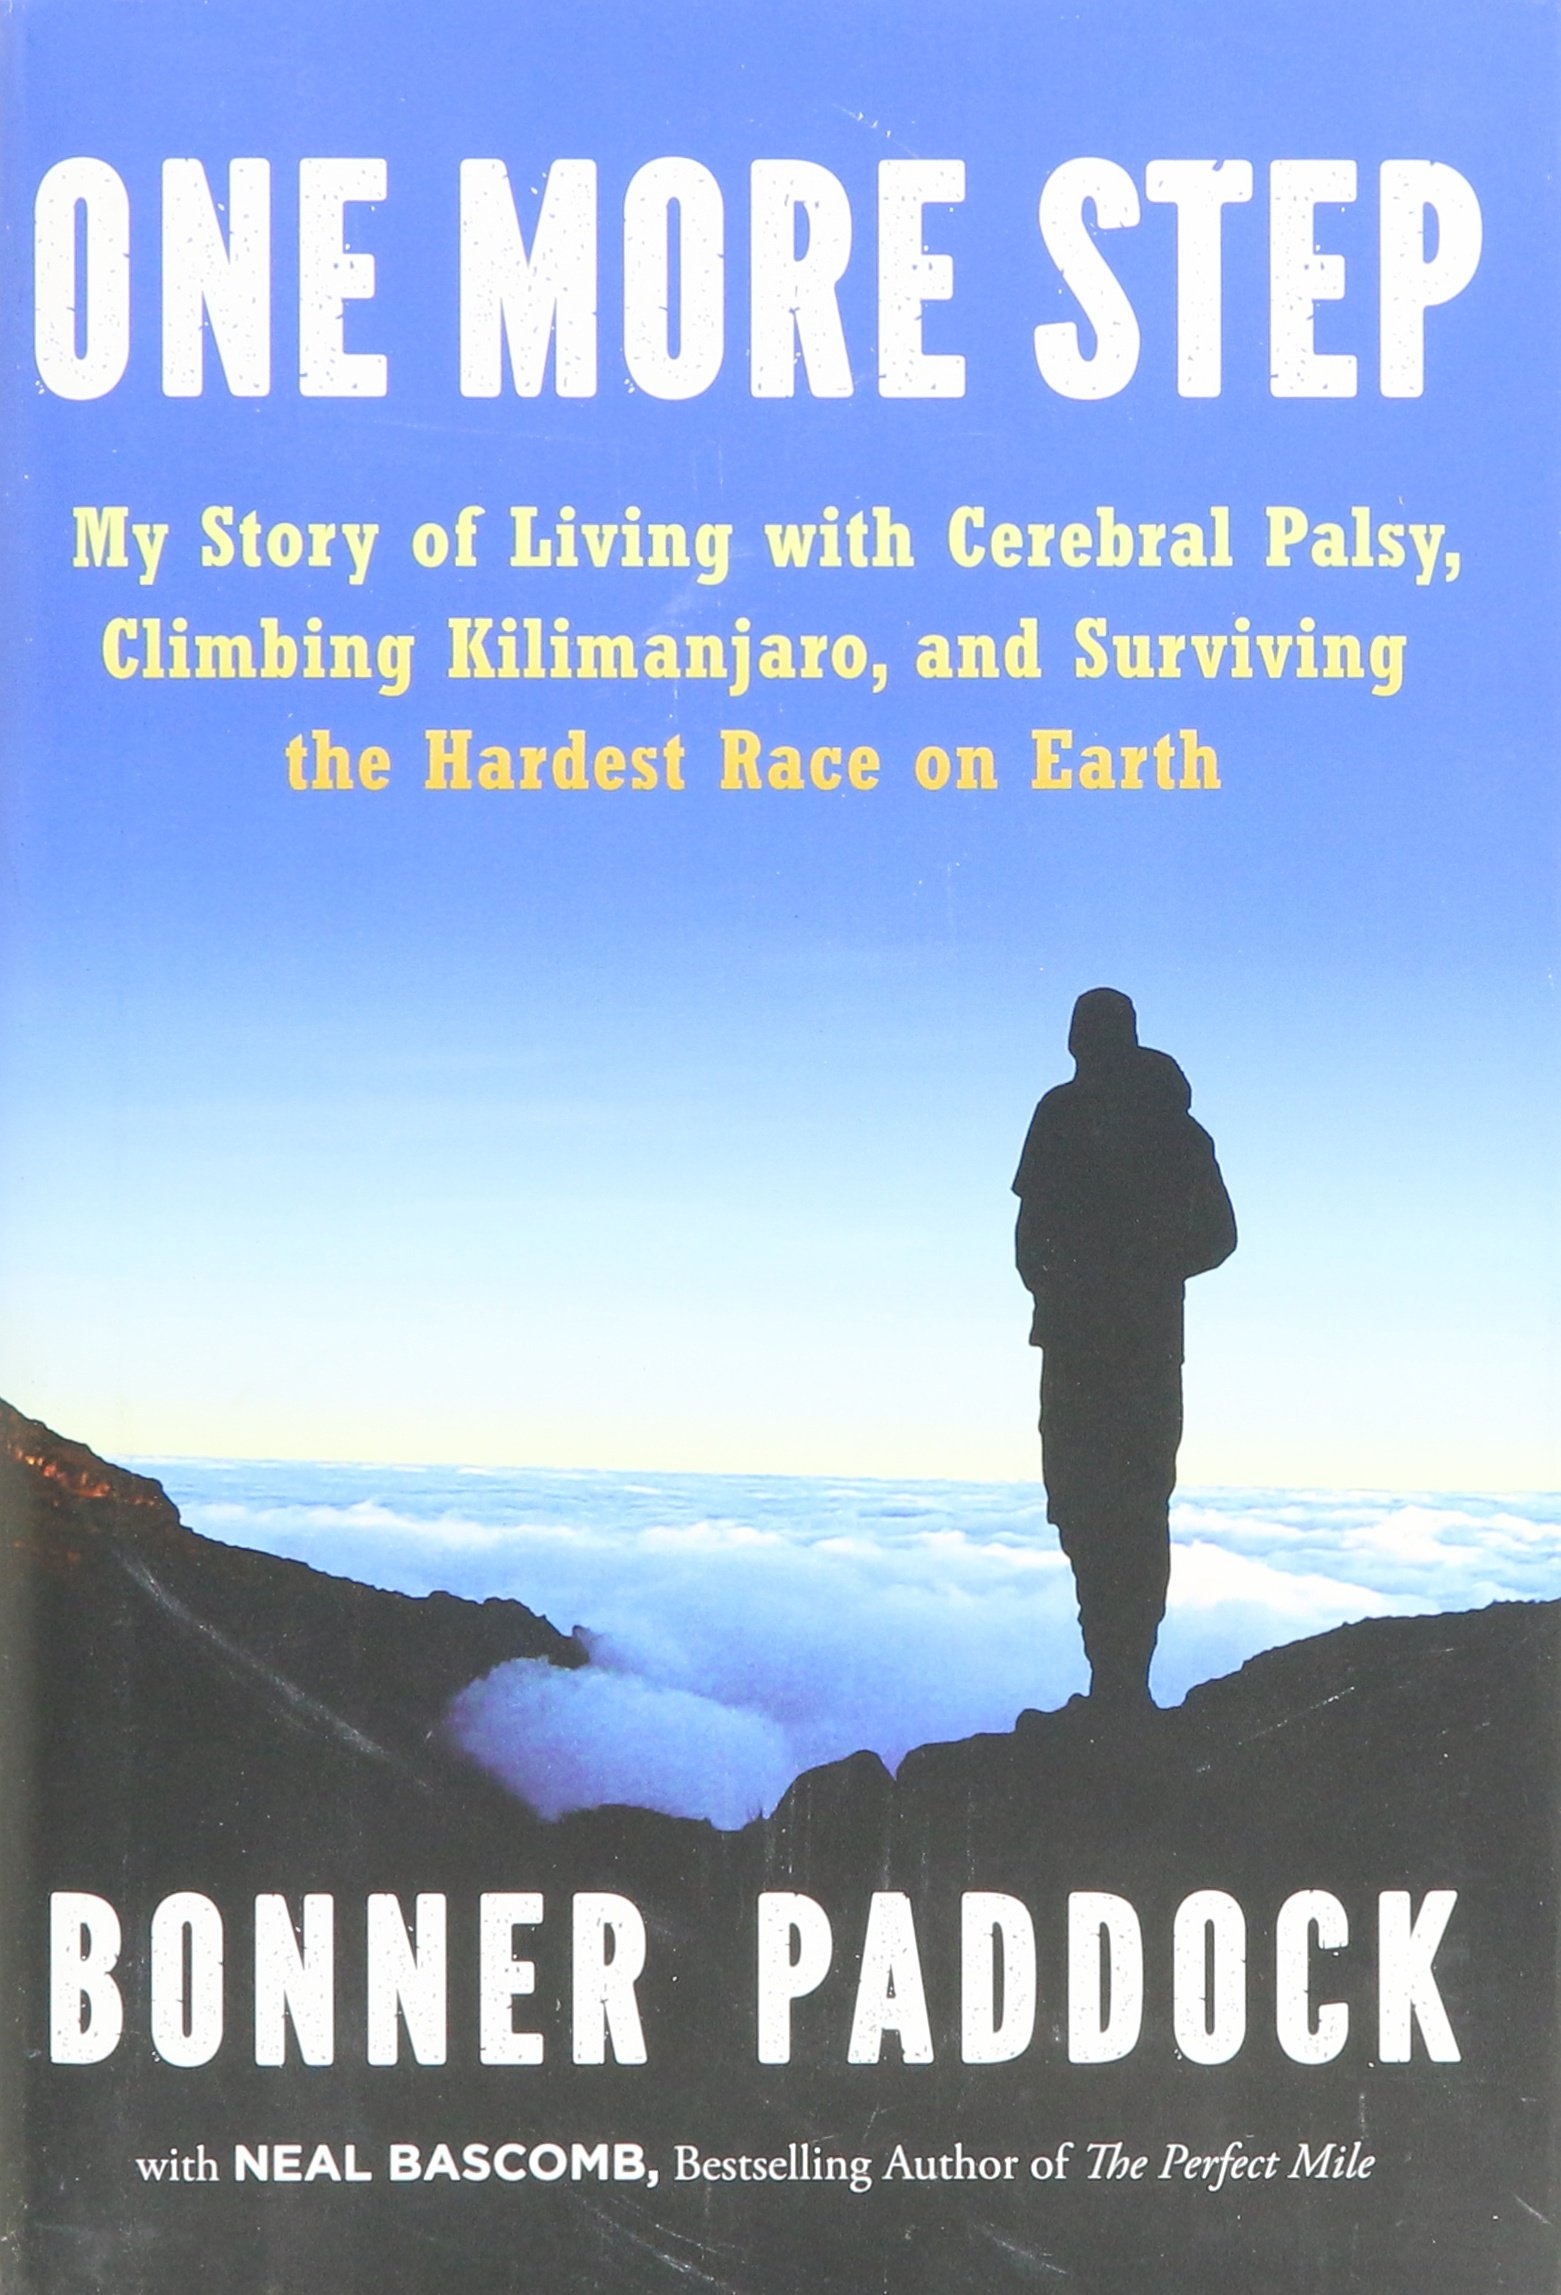 One More Step: My Story of Living with Cerebral Palsy, Climbing  Kilimanjaro, and Surviving the Hardest Race on Earth: Bonner Paddock, Neal  Bascomb: ...